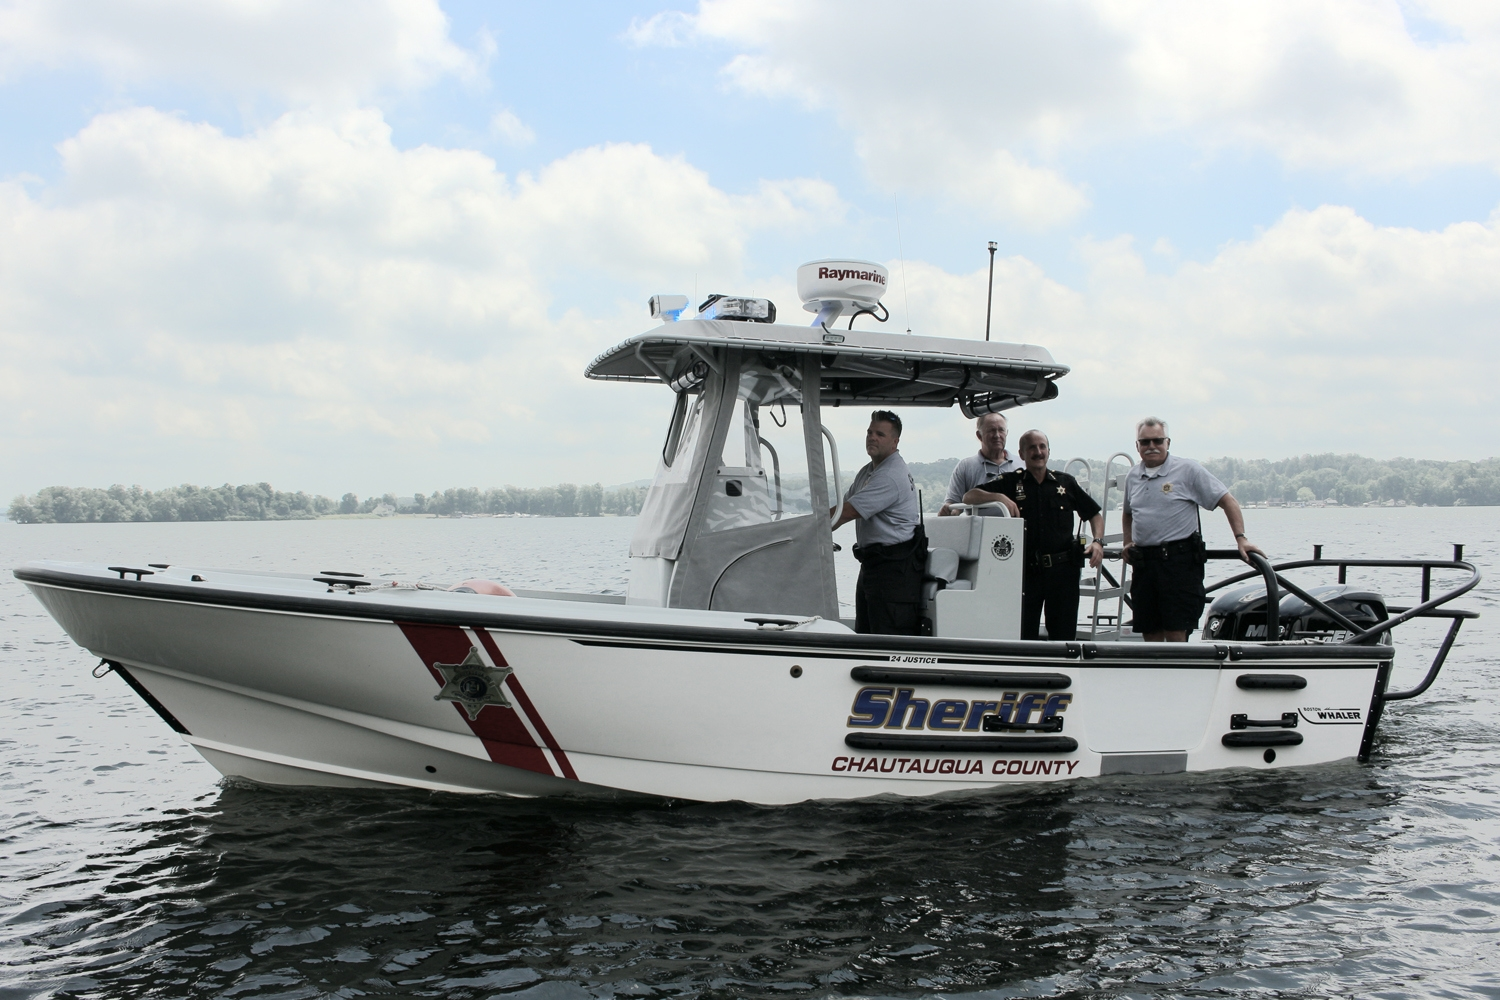 The Chautauqua County Sheriff's office received a new patrol vessel from the state Department of Parks, Recreation and Historic Preservation. (Photo courtesy of the Chautauqua County Sheriff's Office)